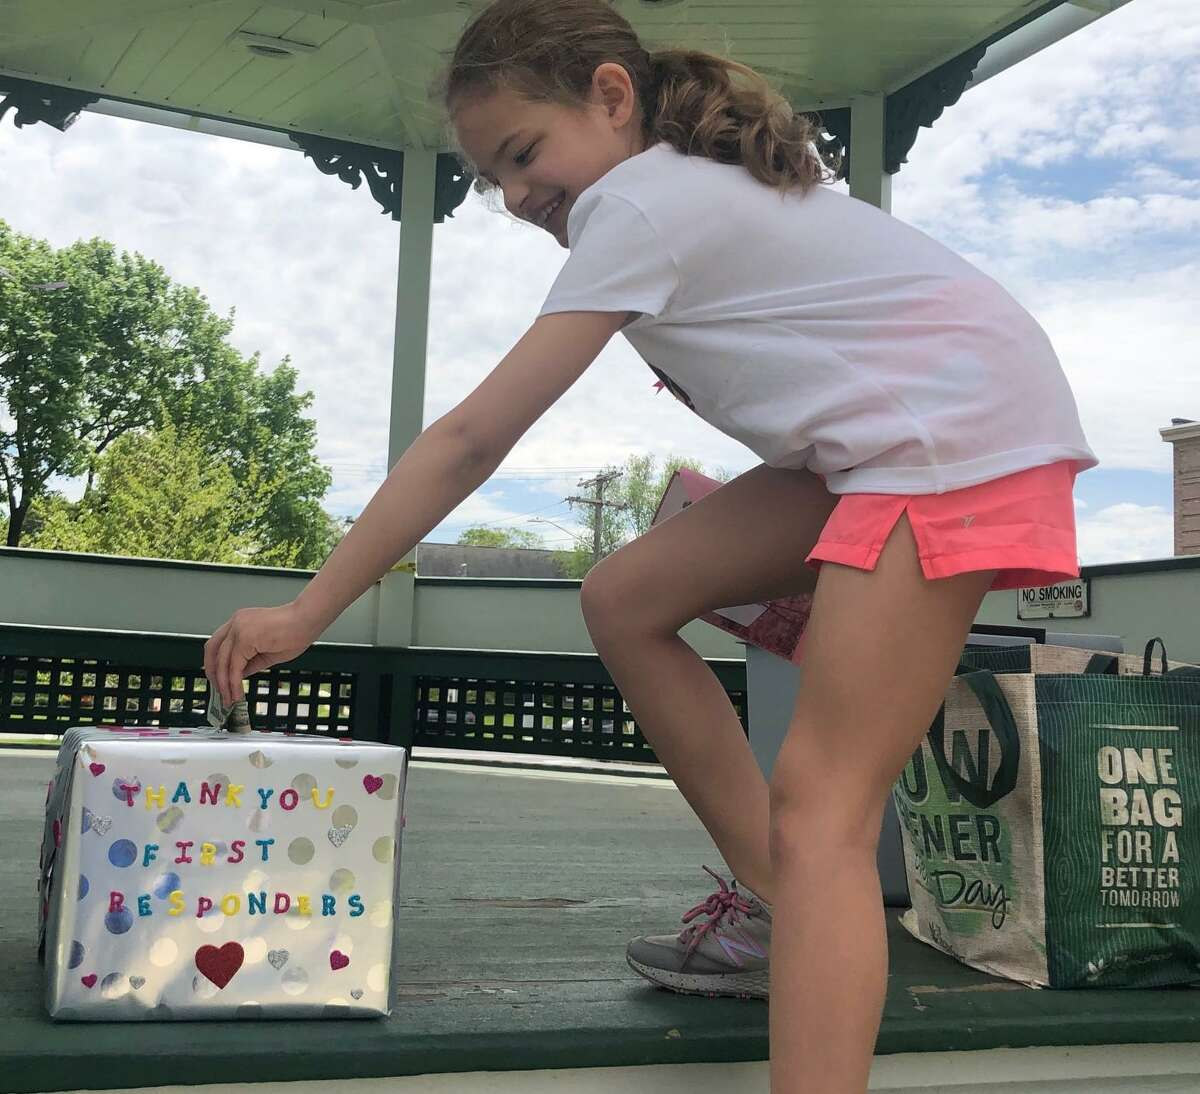 Lyliana Martinez of New Milford collected $510 to donate to first responders as part of her birthday celebration May 17.